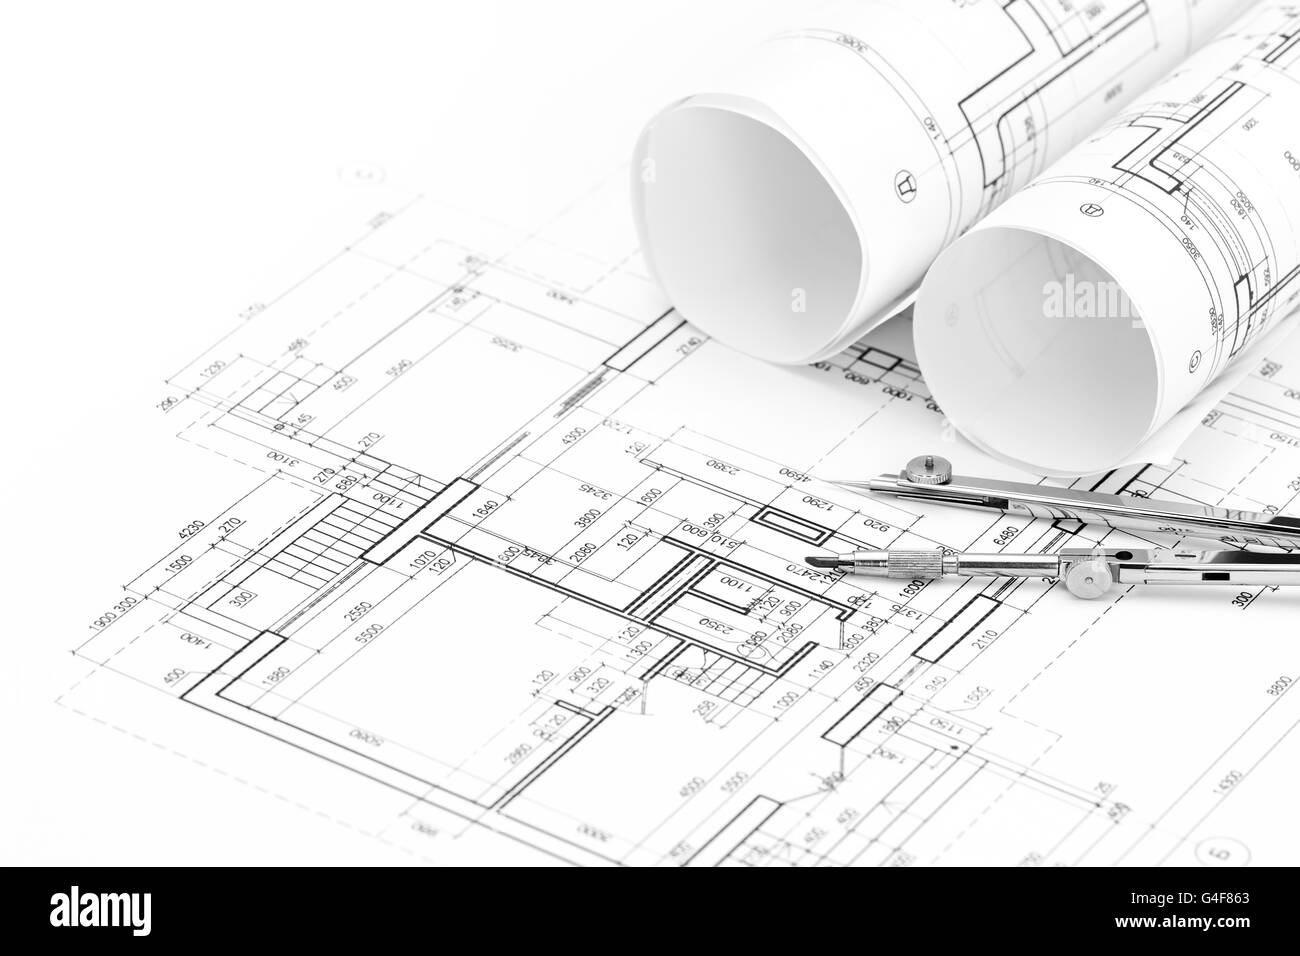 Astounding Architectural Drawings With Floor Plan And Drawing Compass Stock Wiring Digital Resources Funapmognl